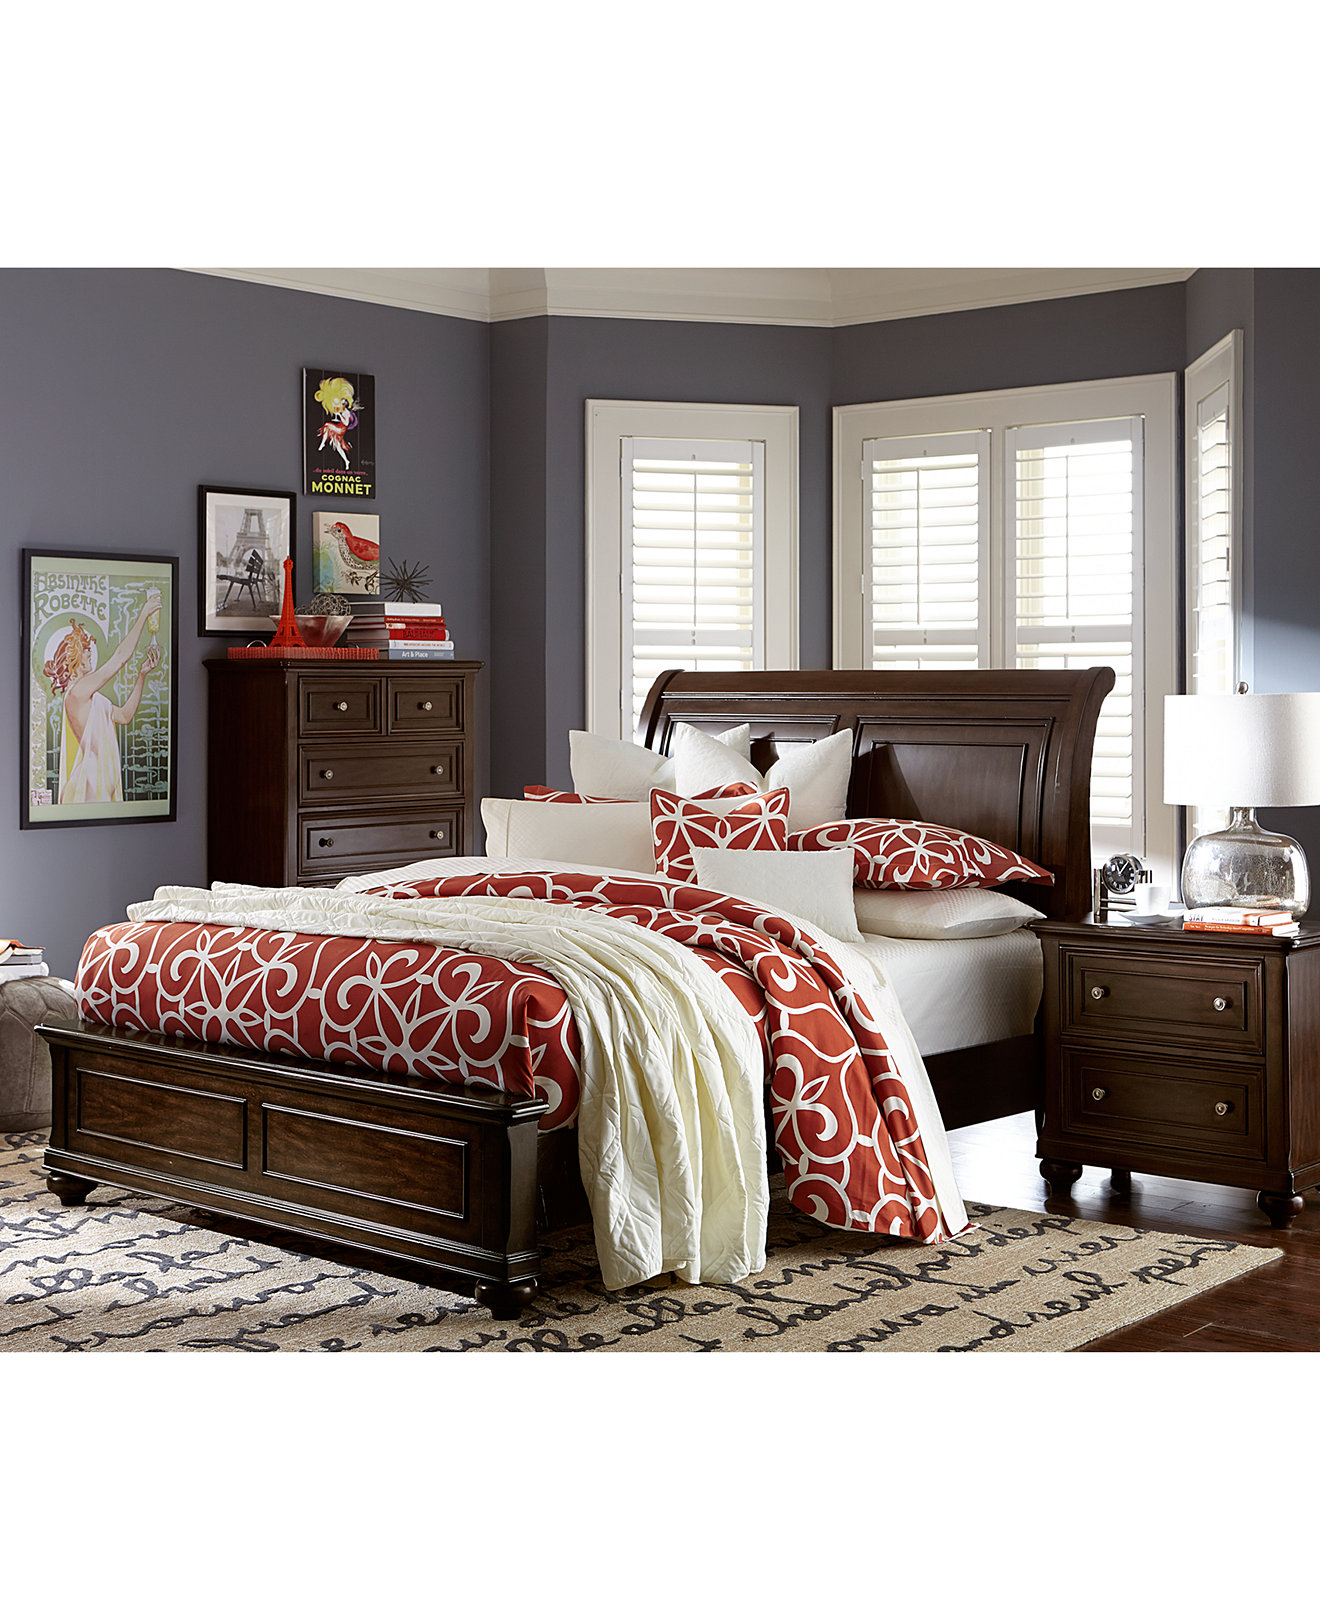 larger view. Clarkdale Bedroom Furniture  Created for Macy s   Furniture   Macy s